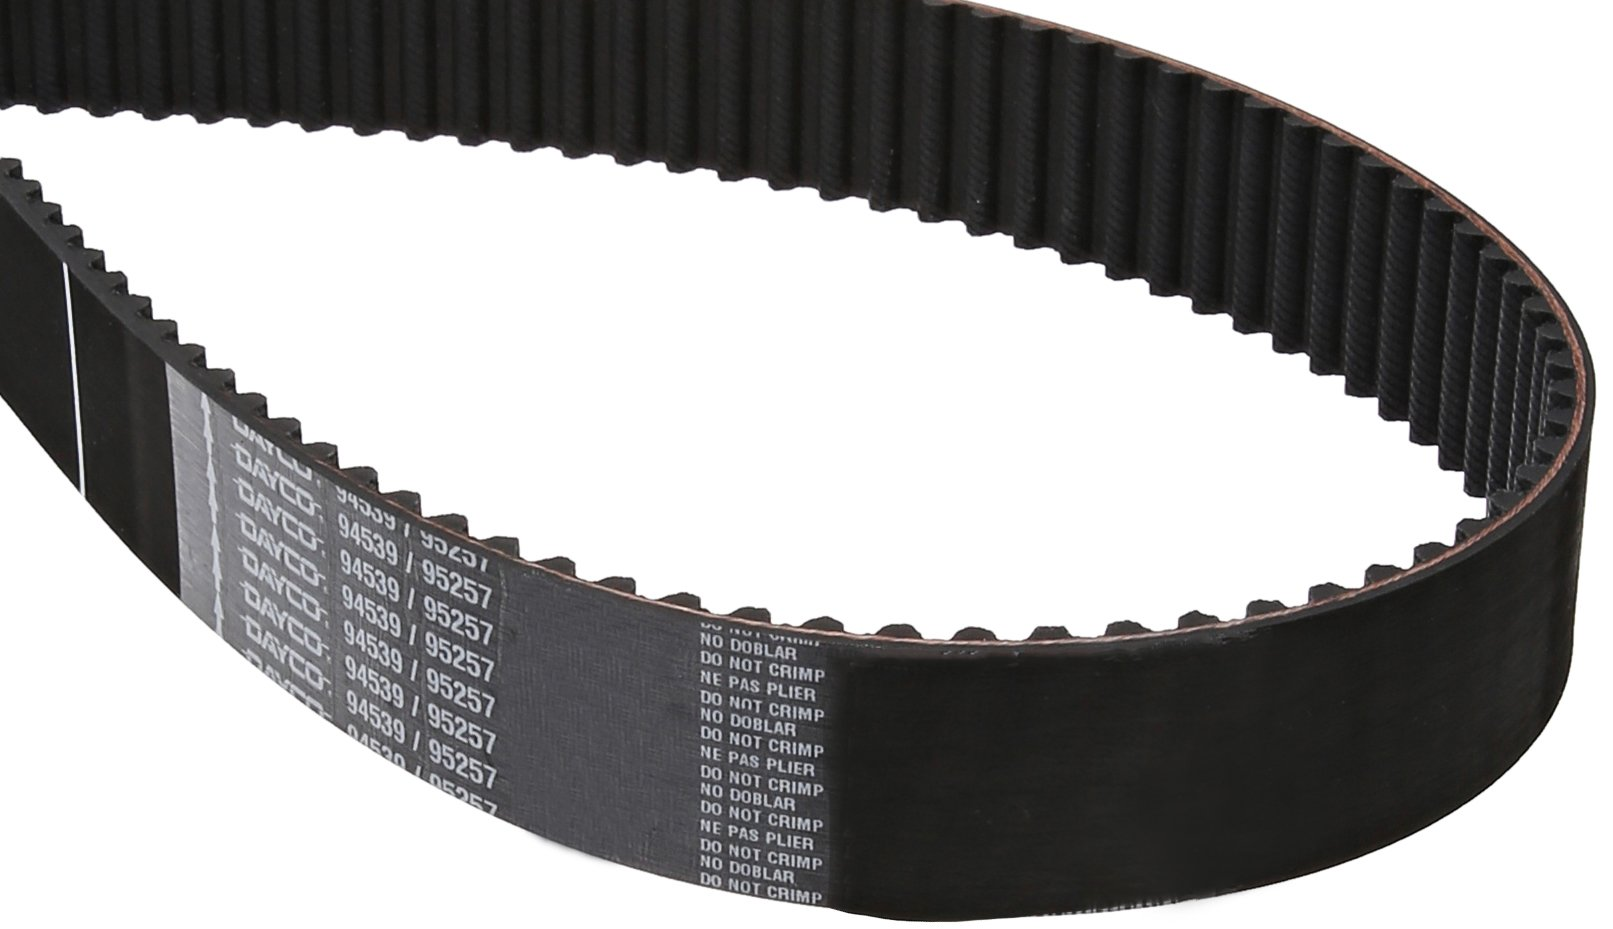 Dayco 95257 Timing Belt